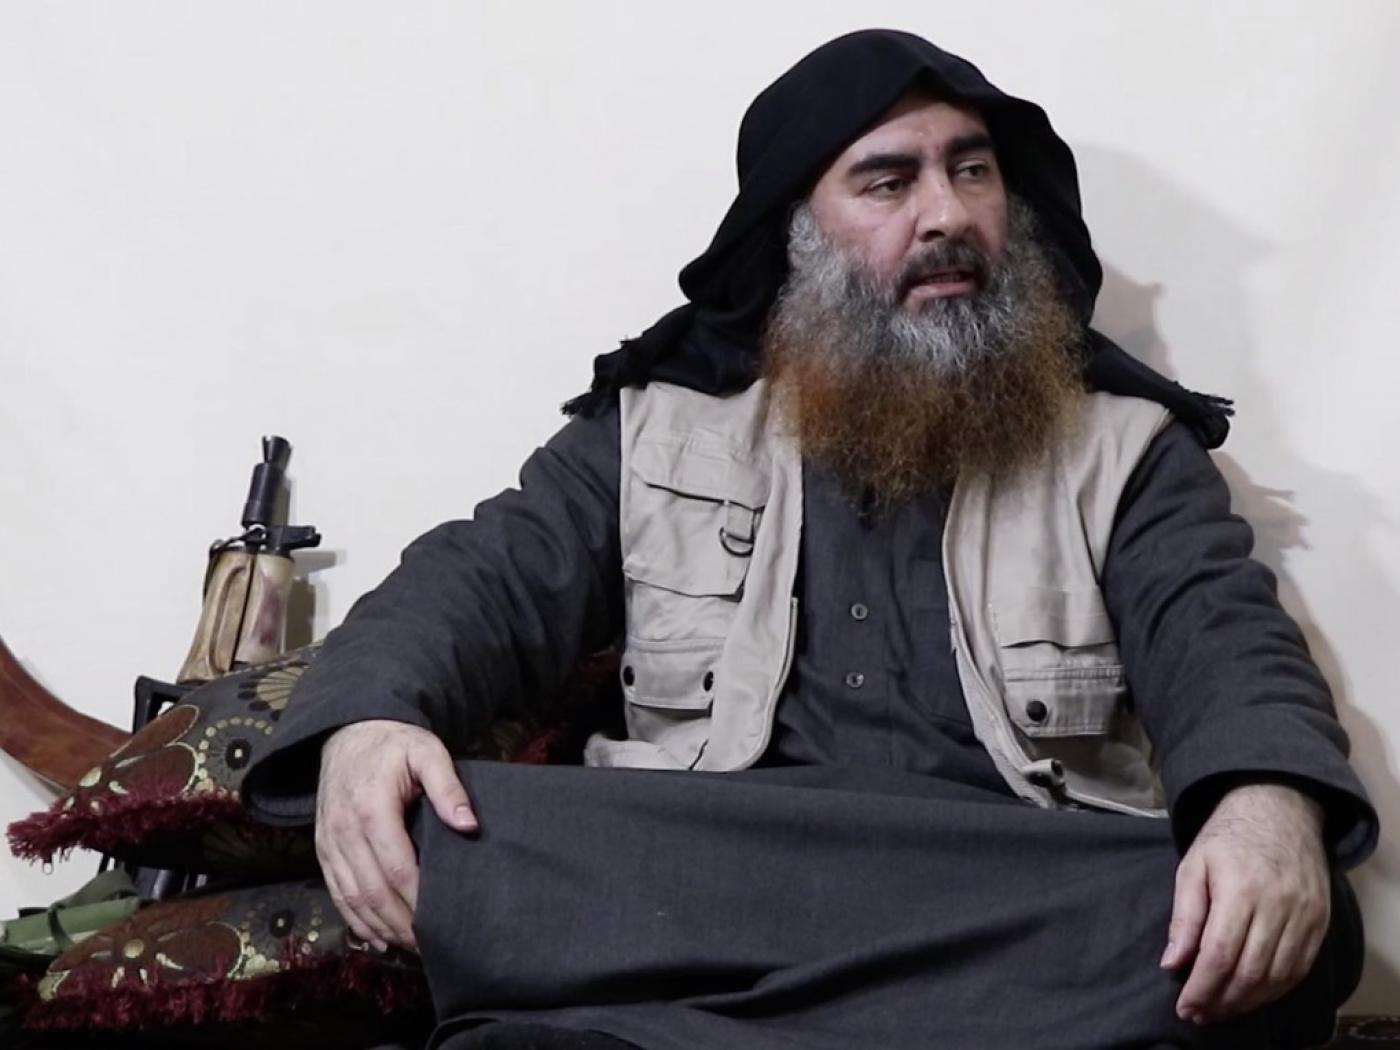 IS leader appears in video for first time in 5 years